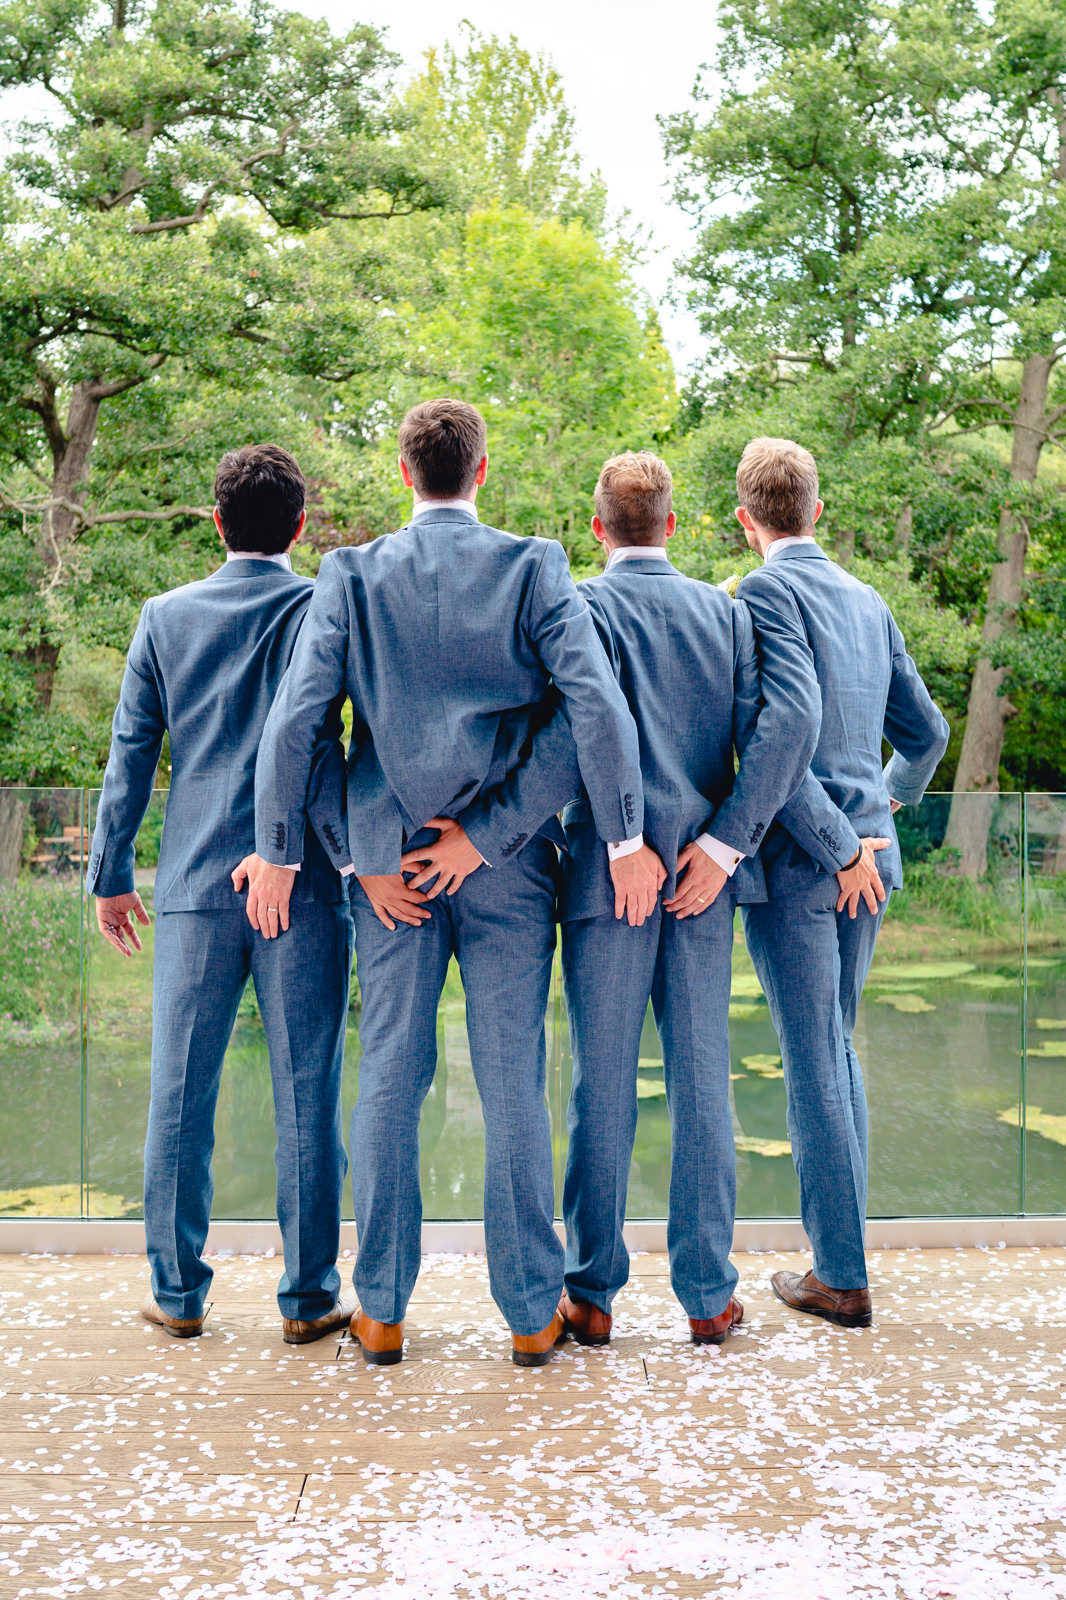 Relaxed wedding, The Dignums Photography, Unconventional Wedding, Alterative Wedding, Chilled out wedding, simple wedding, quirky wedding inspiration, wedding planning, unique wedding- funny wedding photos, funny groomsmen